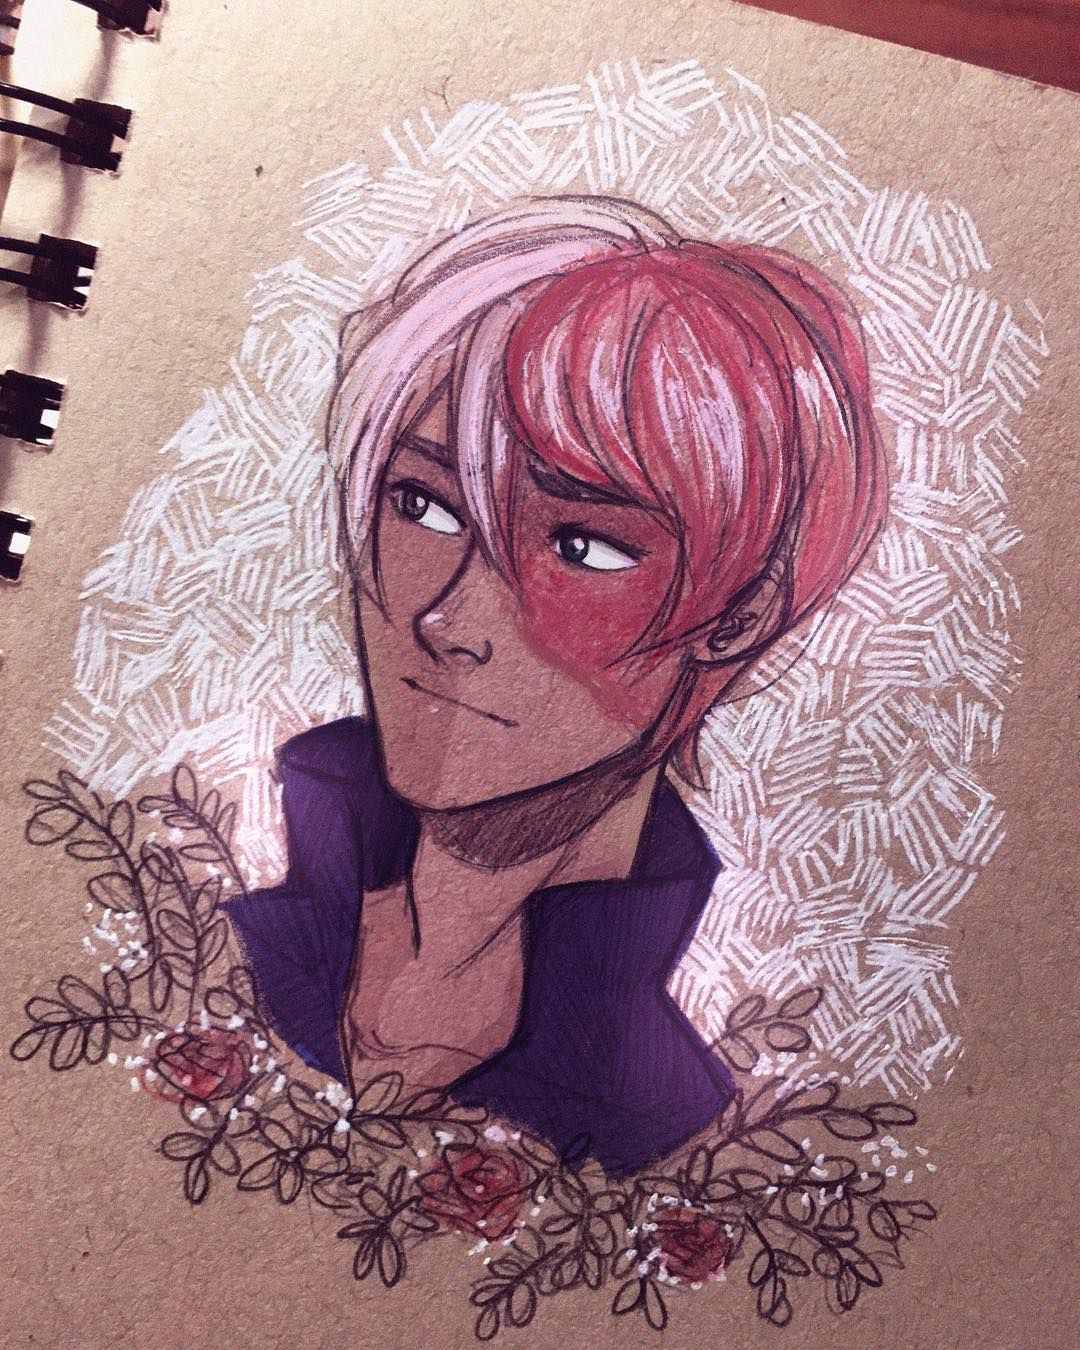 I Love My Sweet Icyhot Son Sketched With A 2b Pencil And Touched Up In Procreate Todorokishouto Shoutotodoroki Todoroki Bn Drawings Artist Anime